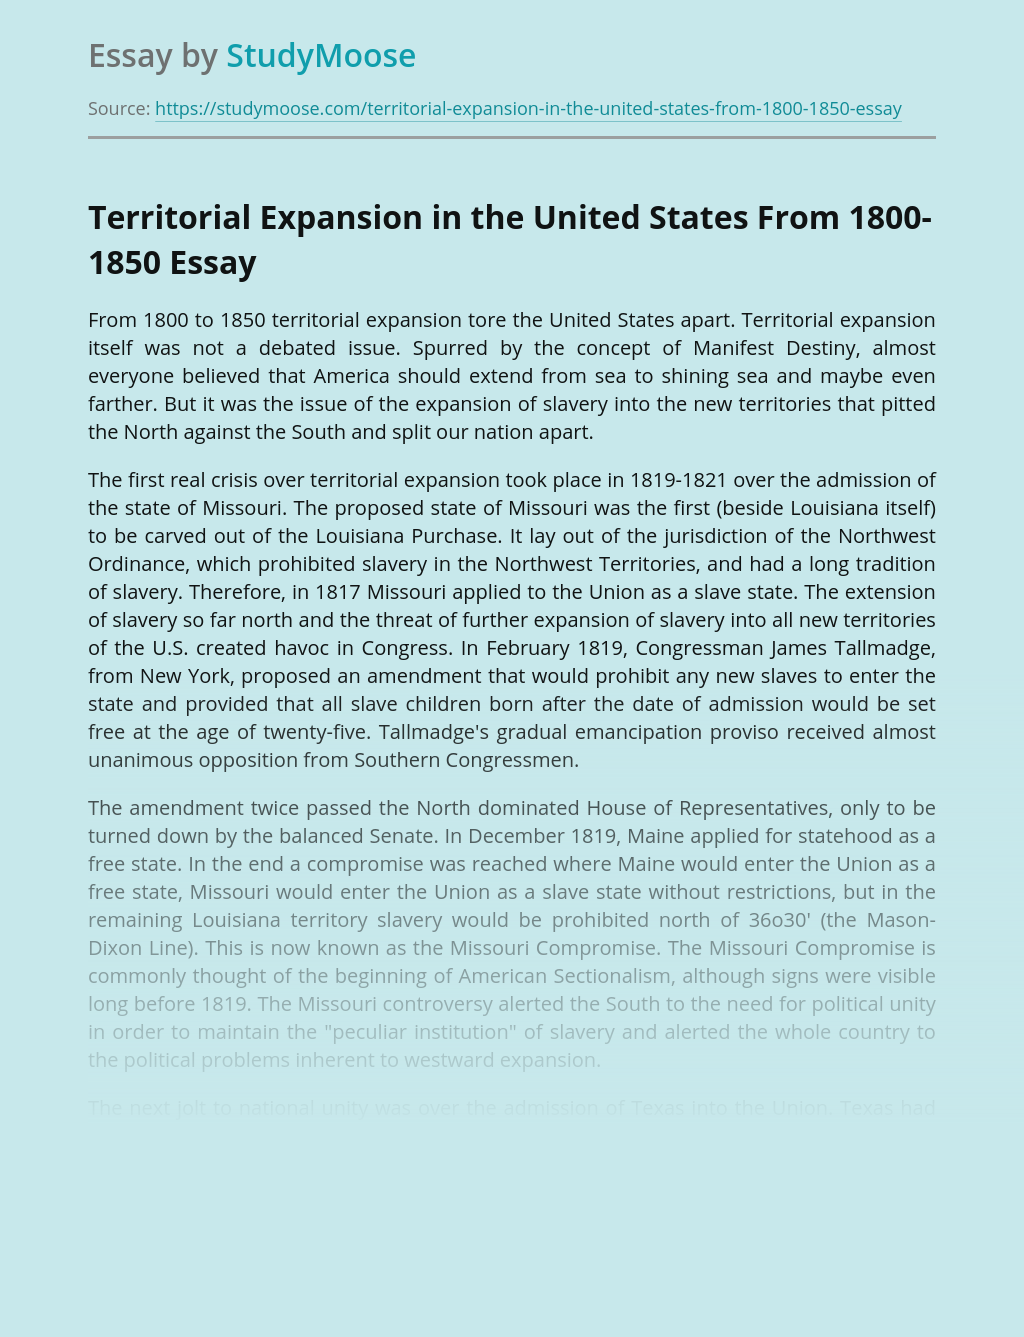 Territorial Expansion in the United States From 1800-1850